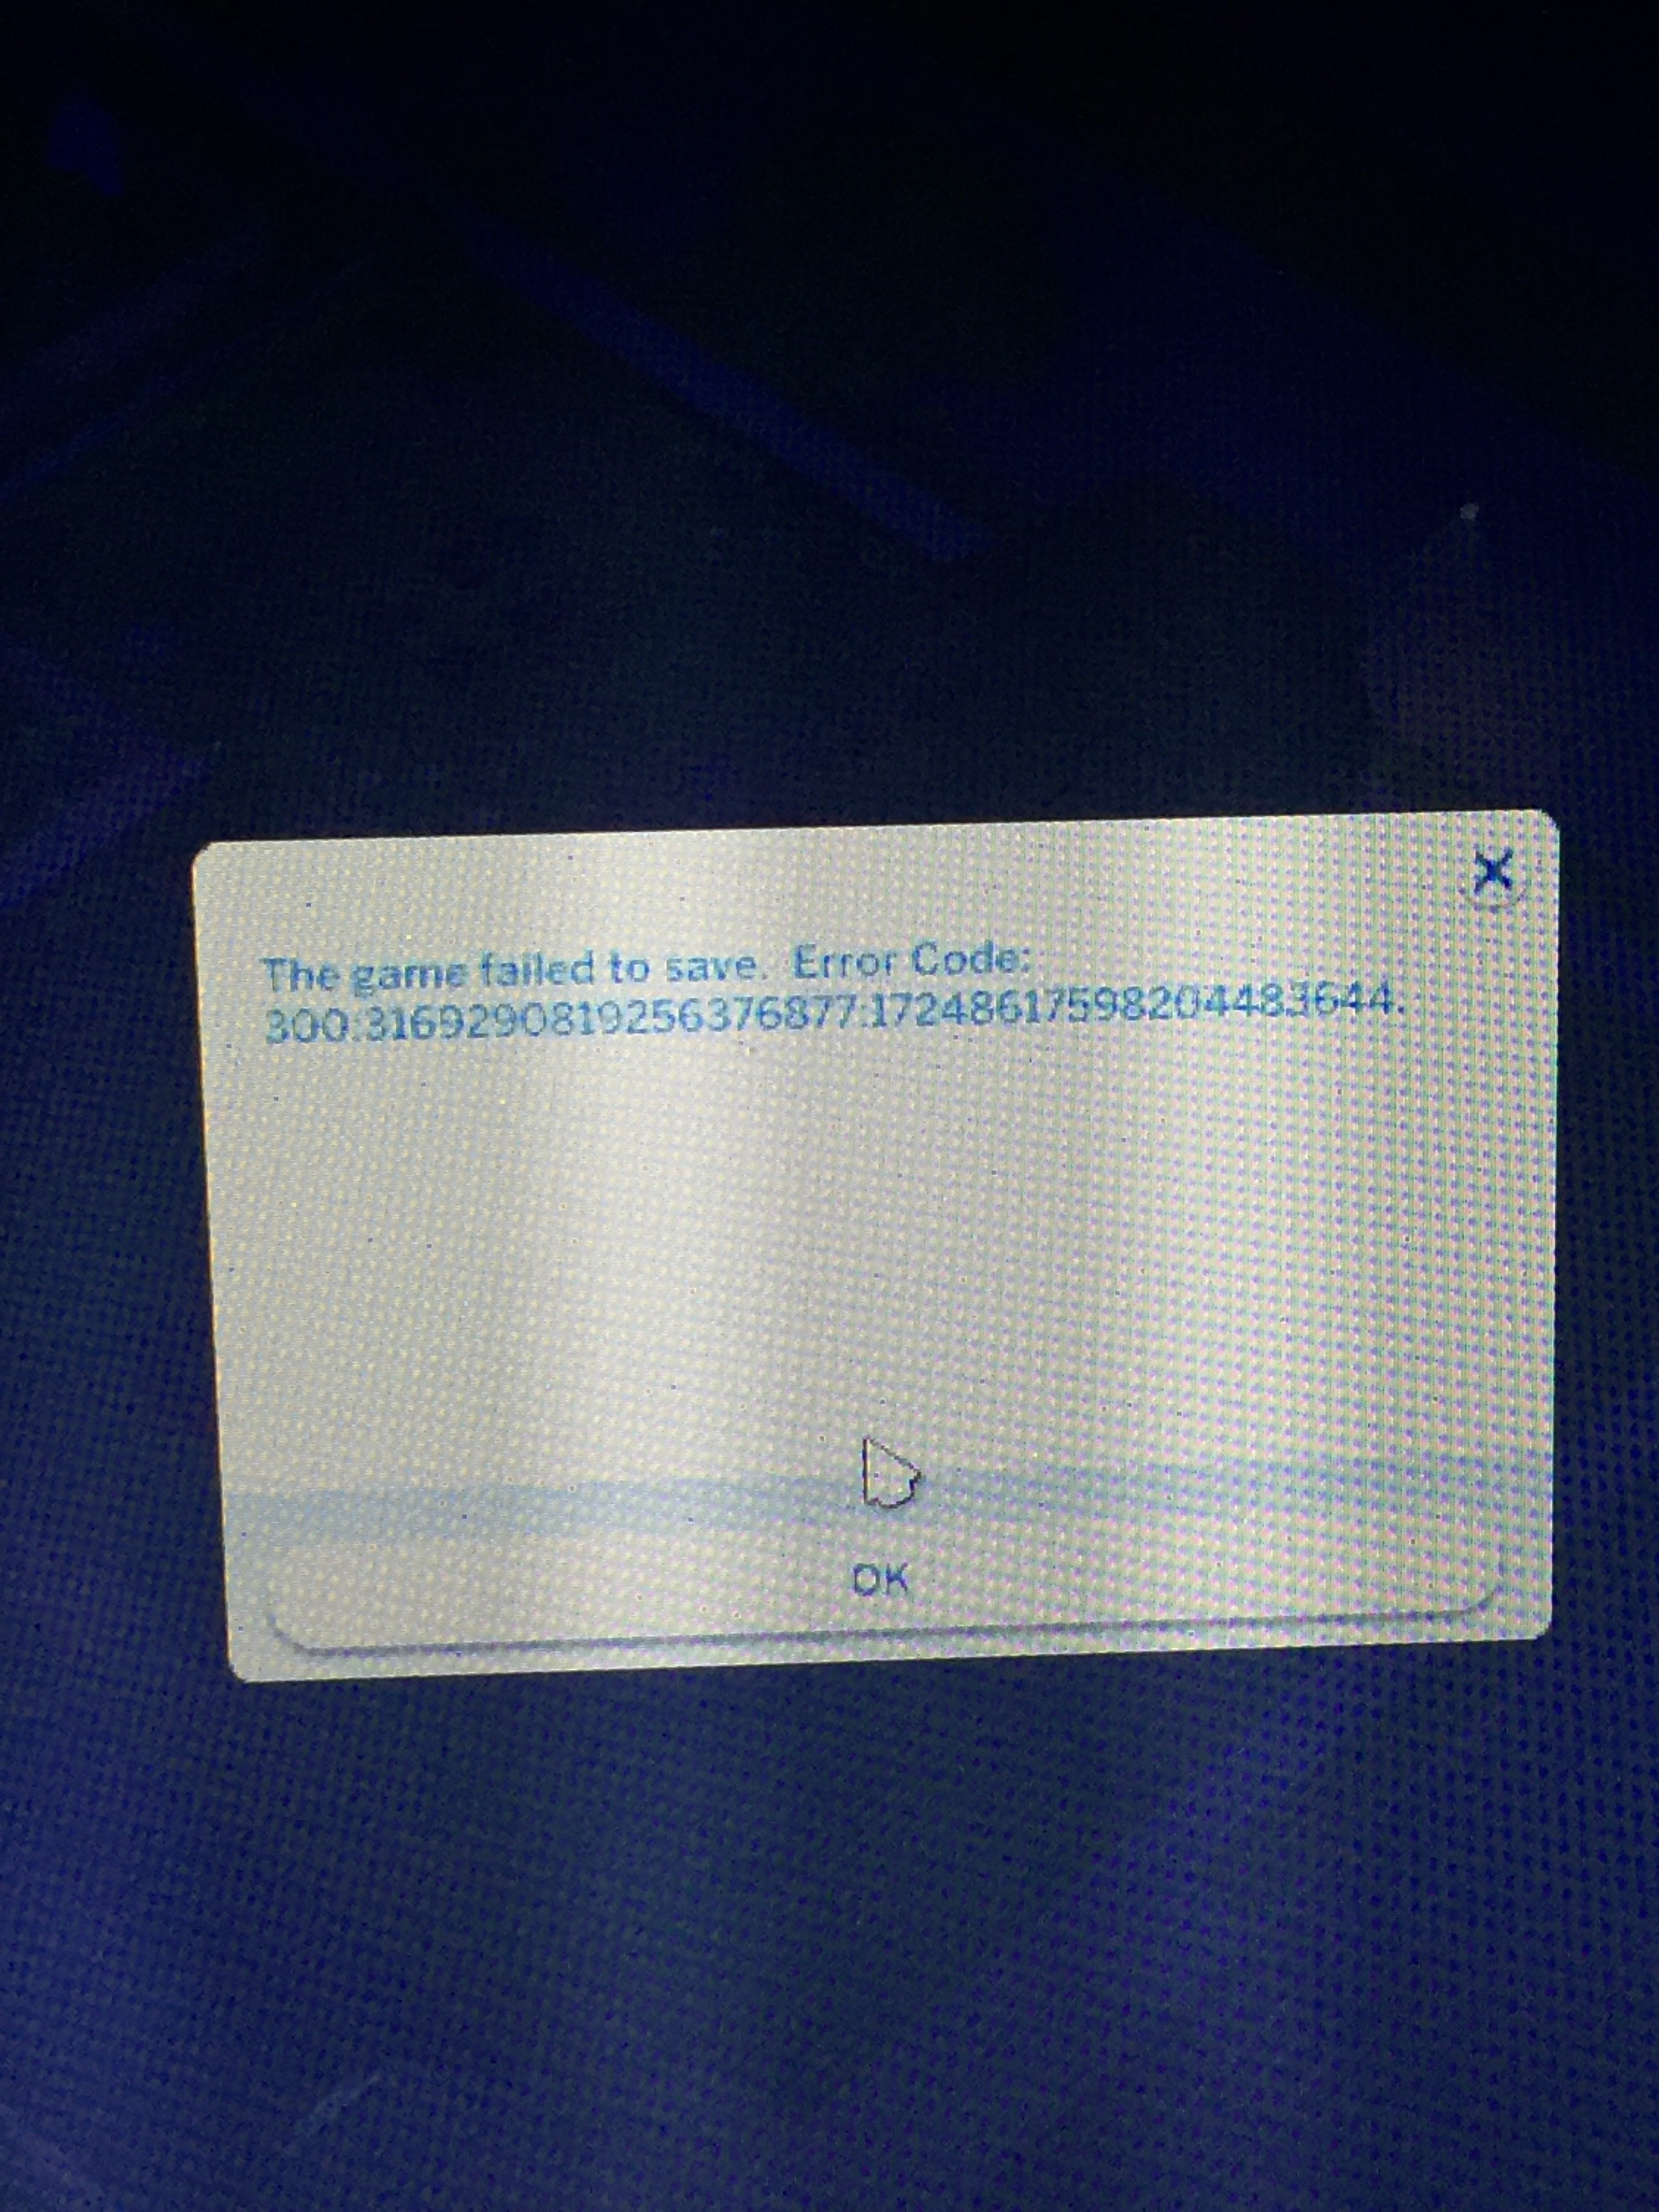 Can't save, error code 300 - Answer HQ